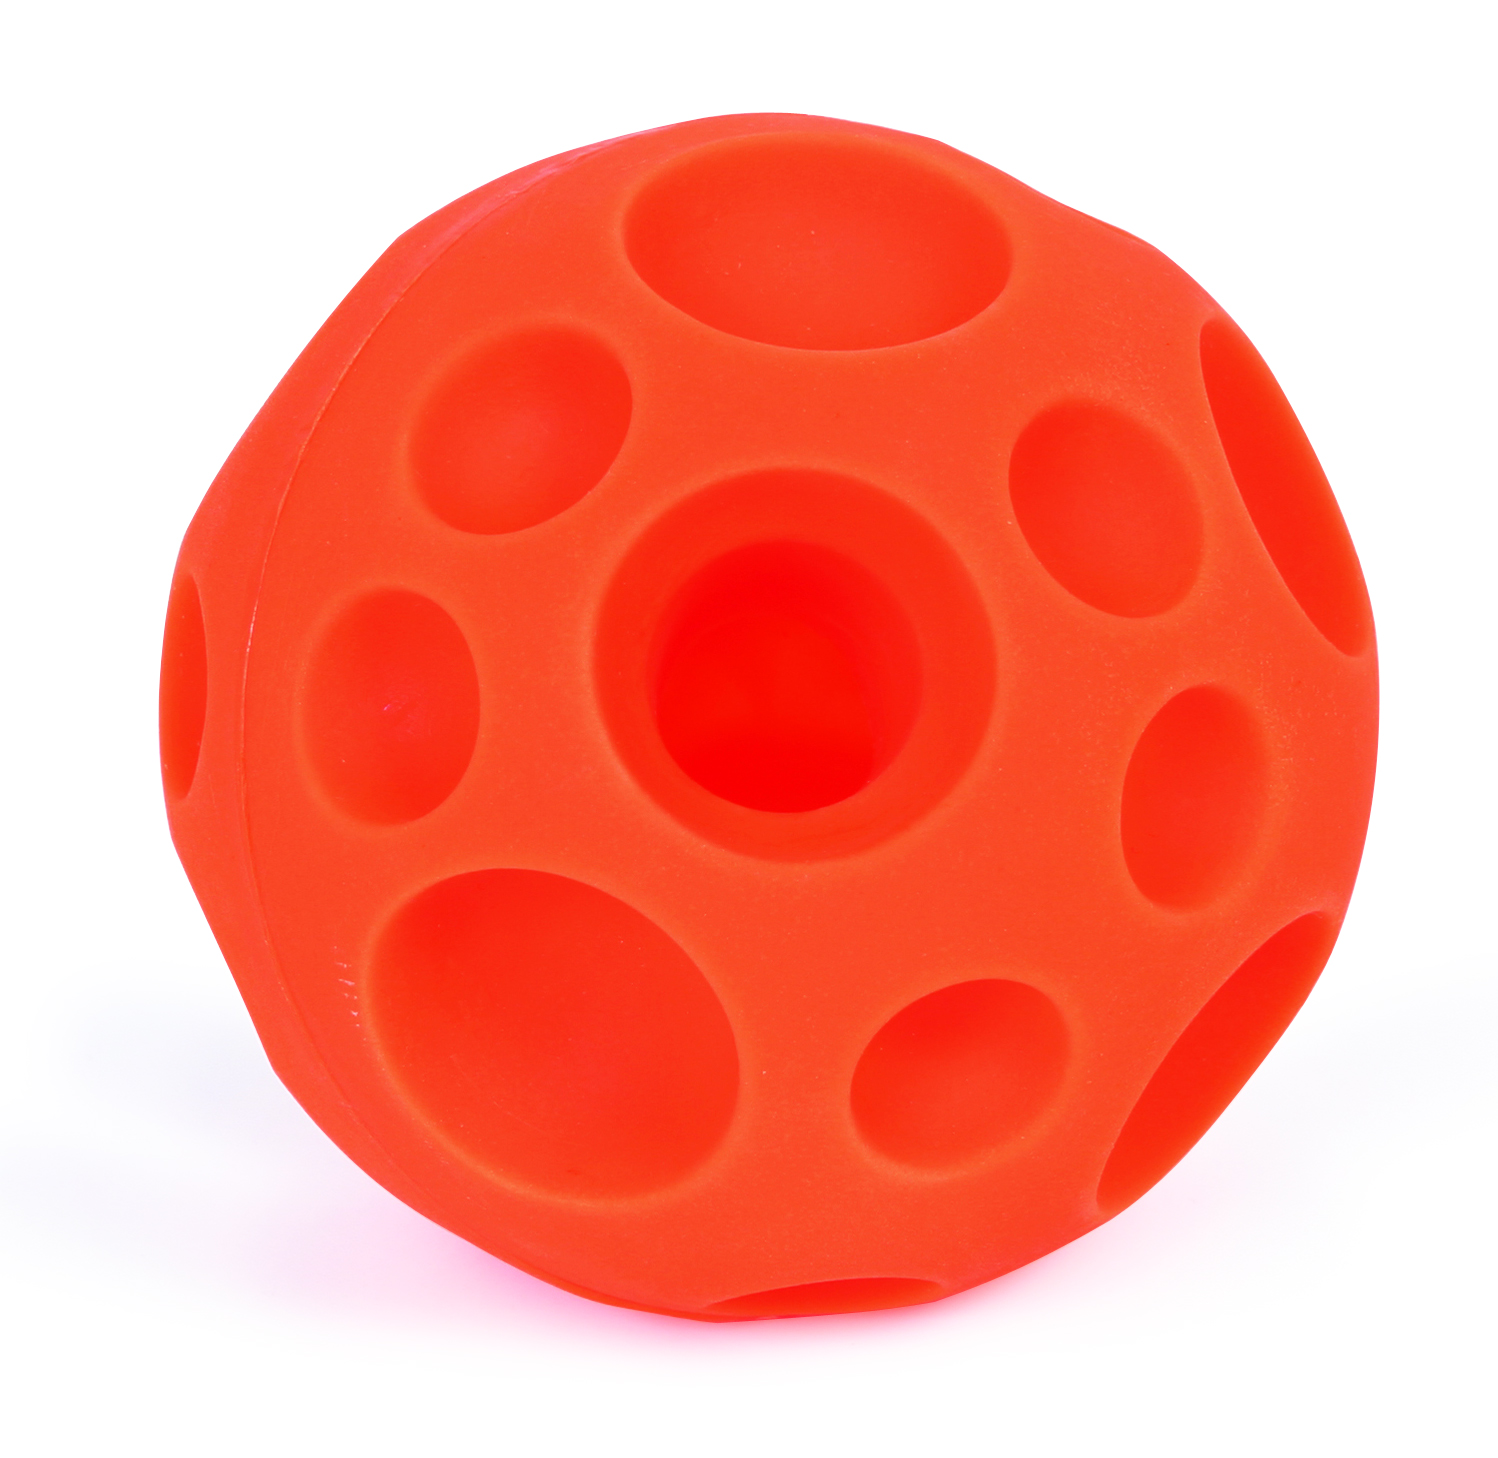 Tricky Treat Ball - Large